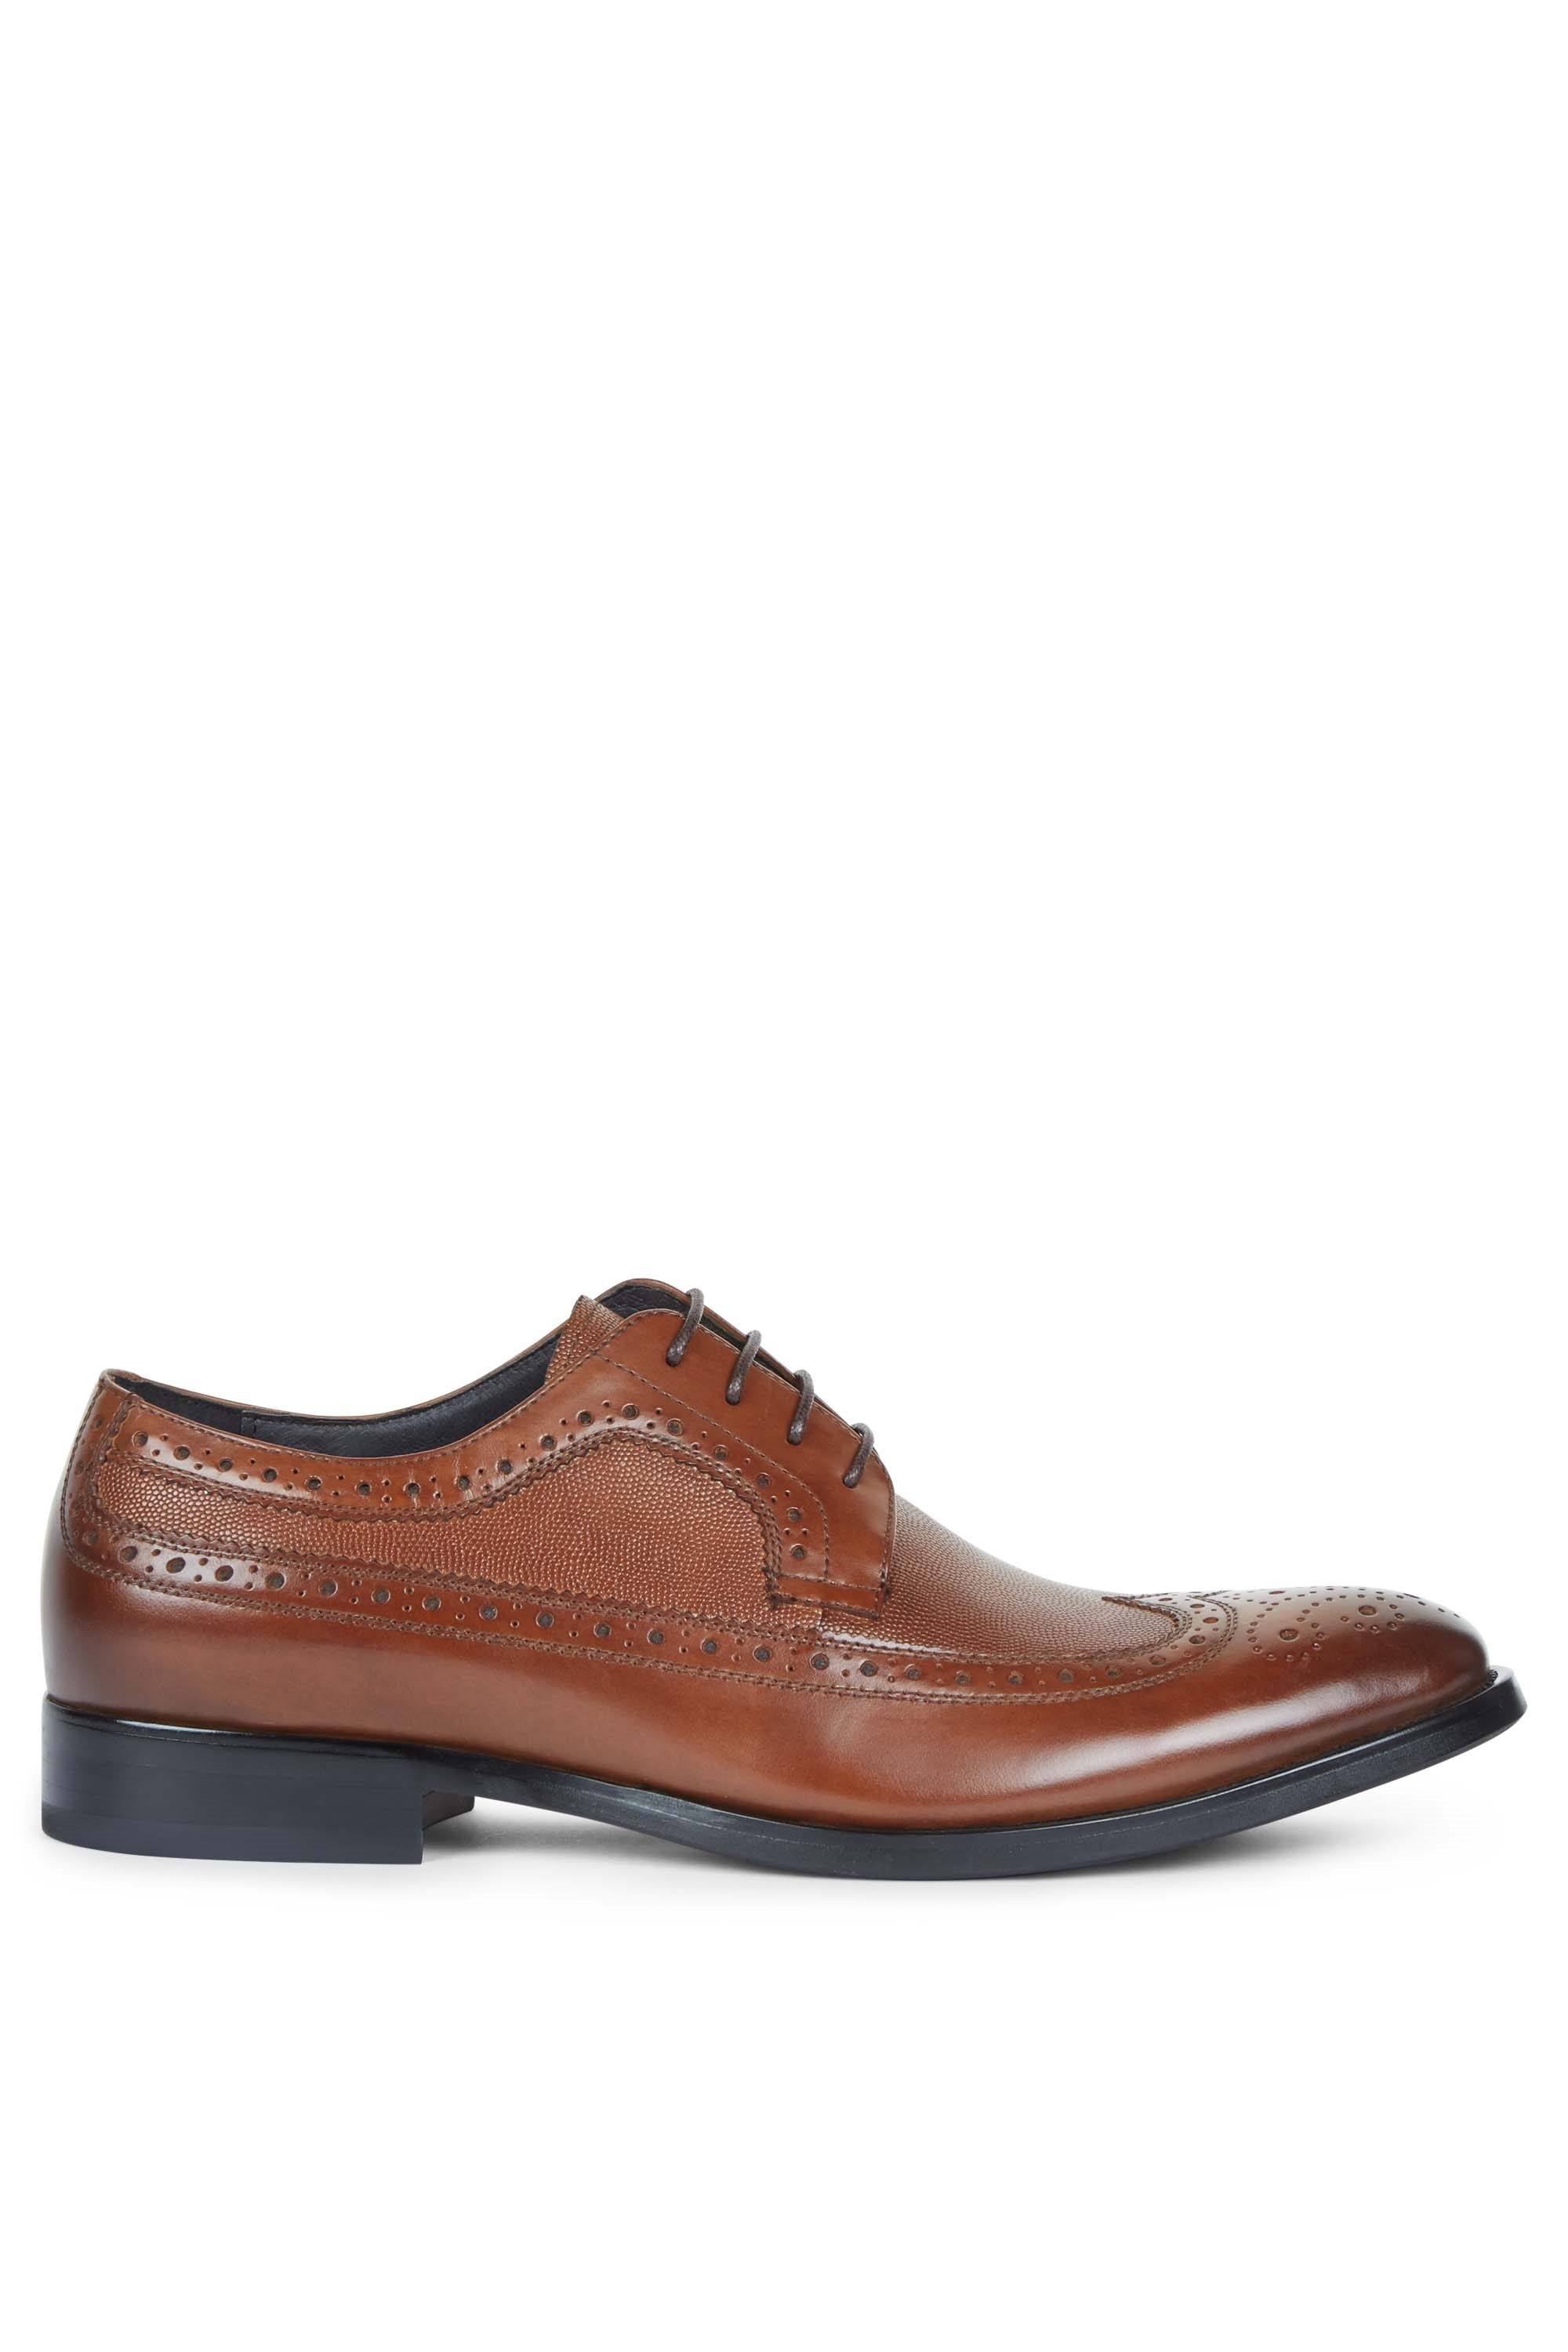 Kitchener Waterloo Furniture Stores White Wingtip Oxford Shoes 28 Images Cole Haan Zero